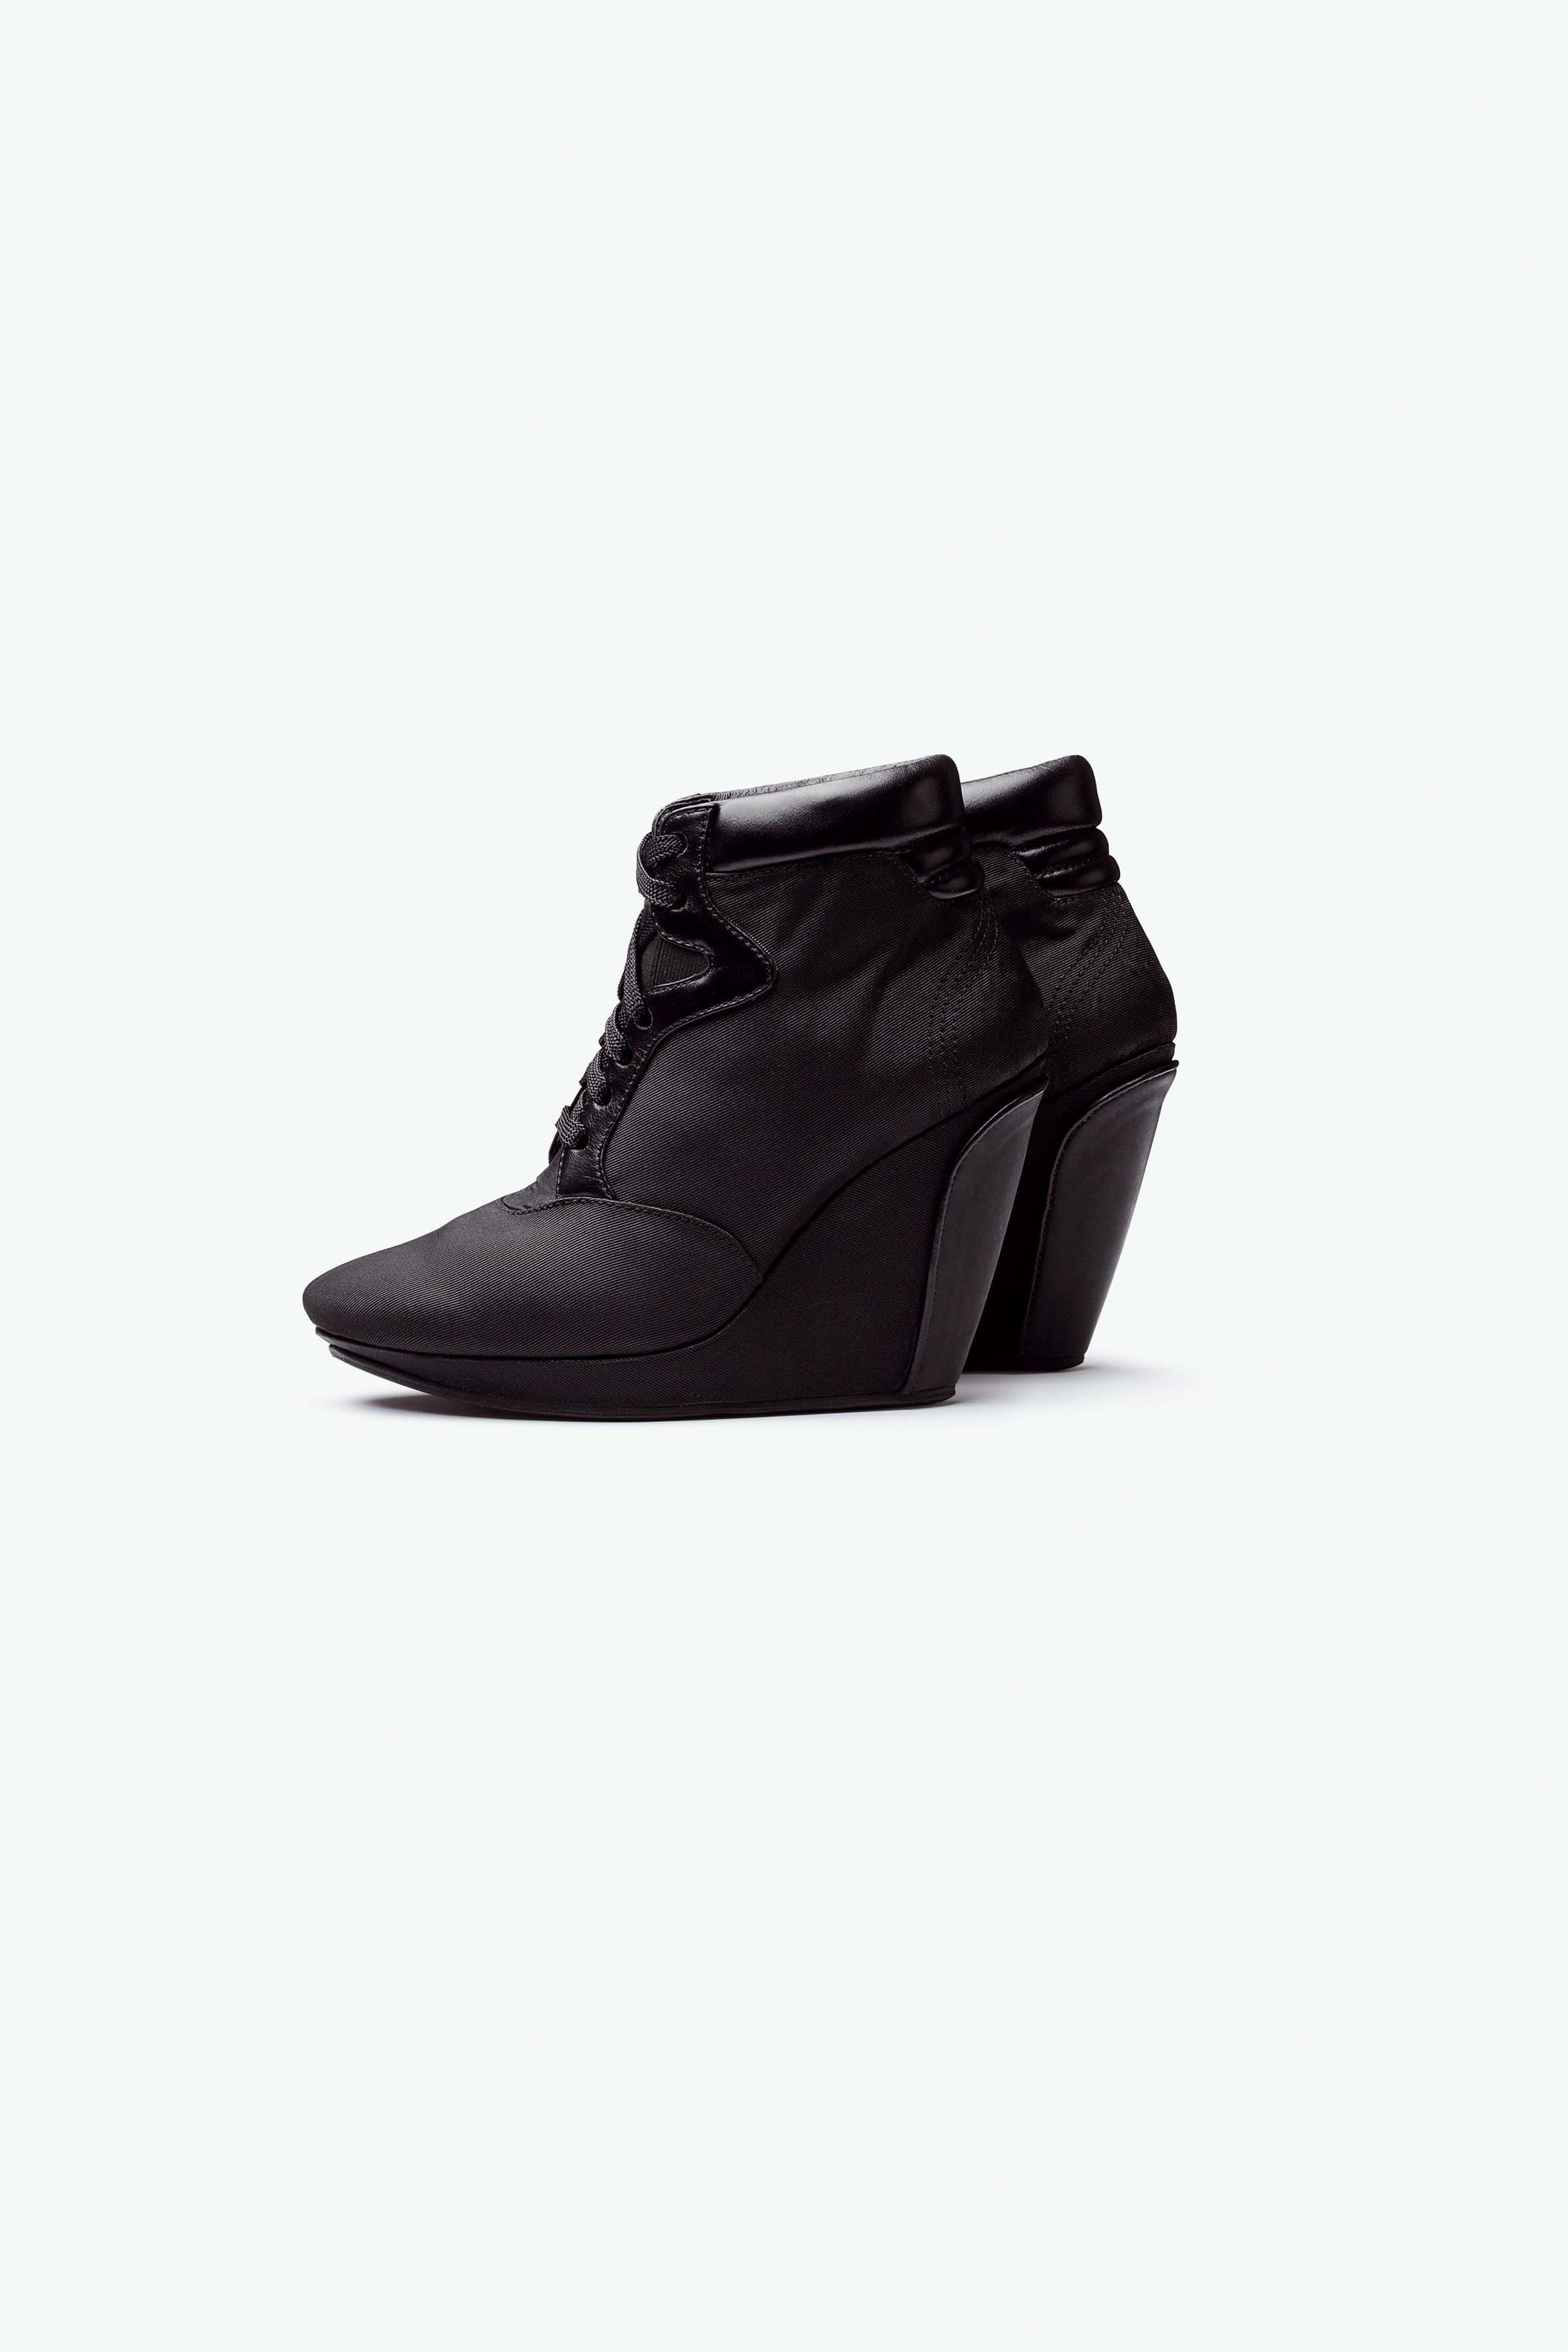 on sale 8df0c ffde4 ADIDAS SLVR, LACE WEDGE  been wearing the eggplant version for days. so  comfortable and awesome. now that they re on sale, i m convinced i need them  in ...